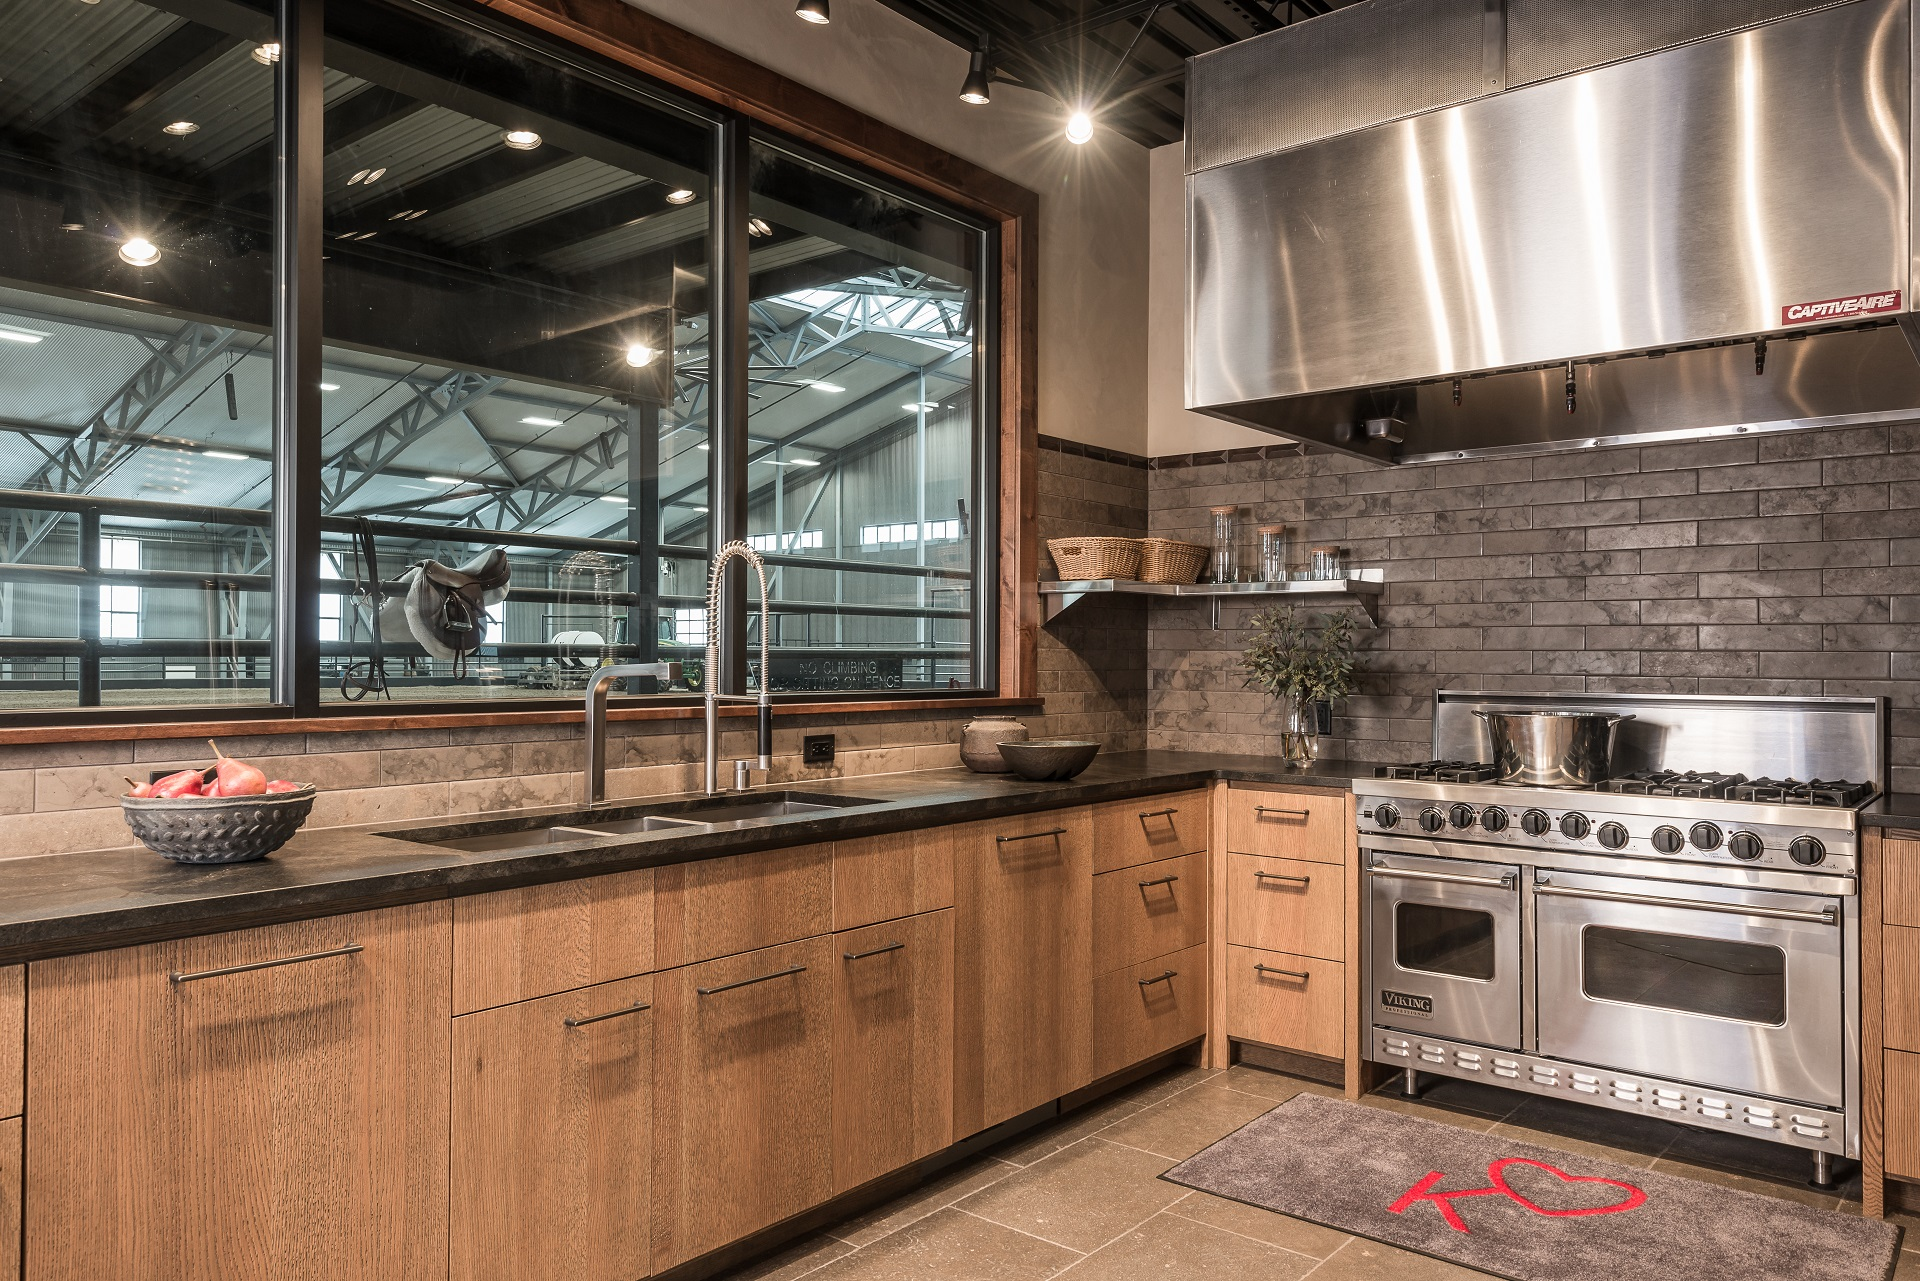 large catering kitchen serves the arena's VIP lounge which also includes a seating area warmed by a fireplace, a large dining room and a private apartment. On the second level is another seating area with a balcony overlooking the outdoor arena.